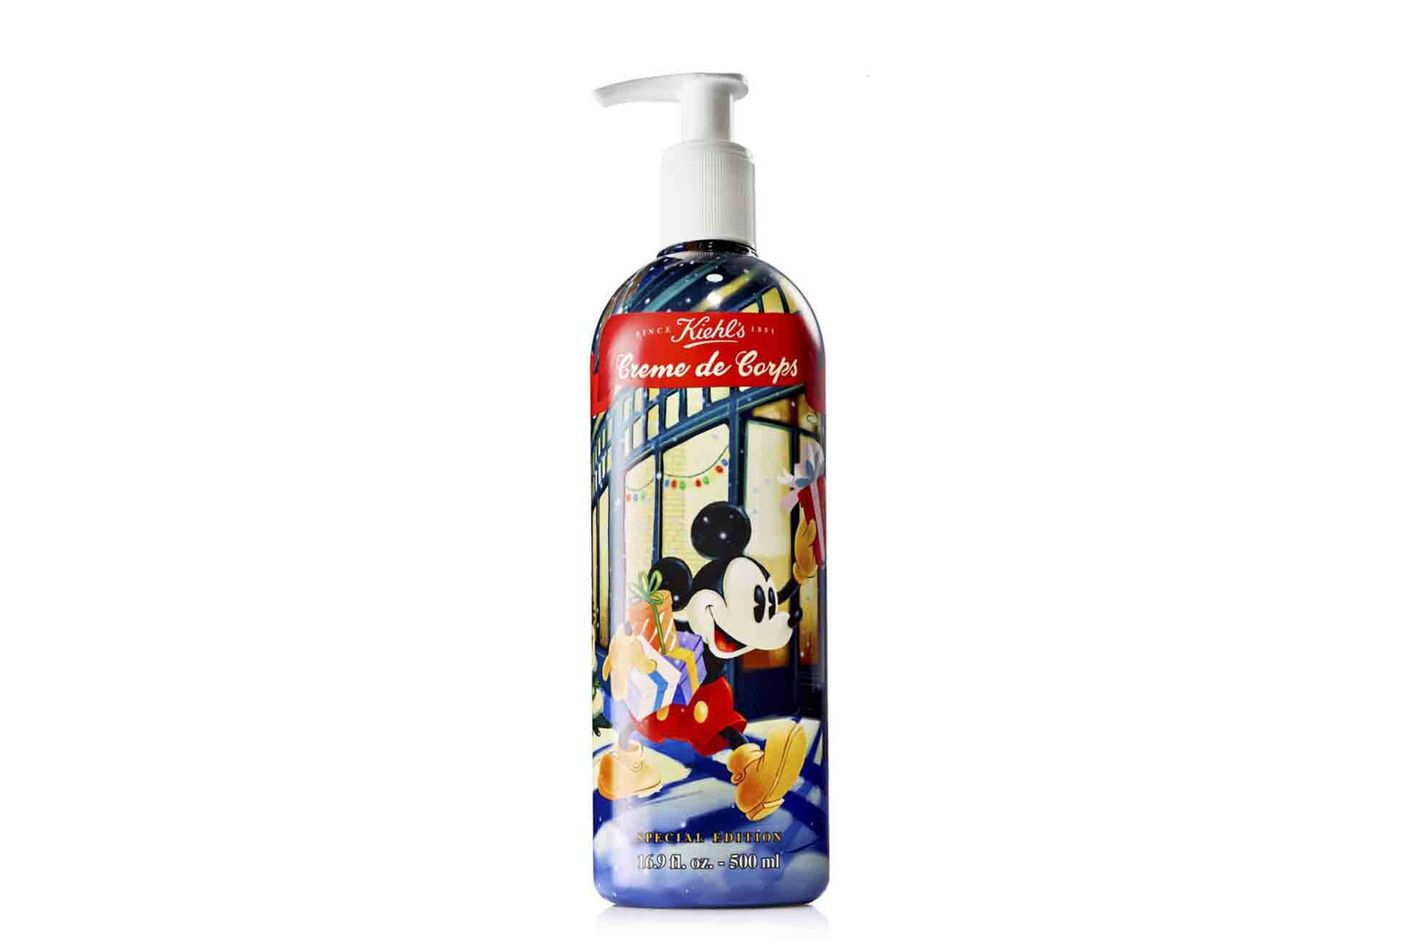 Disney X Kiehl's Limited Edition Creme De Corps Whipped Body Butter